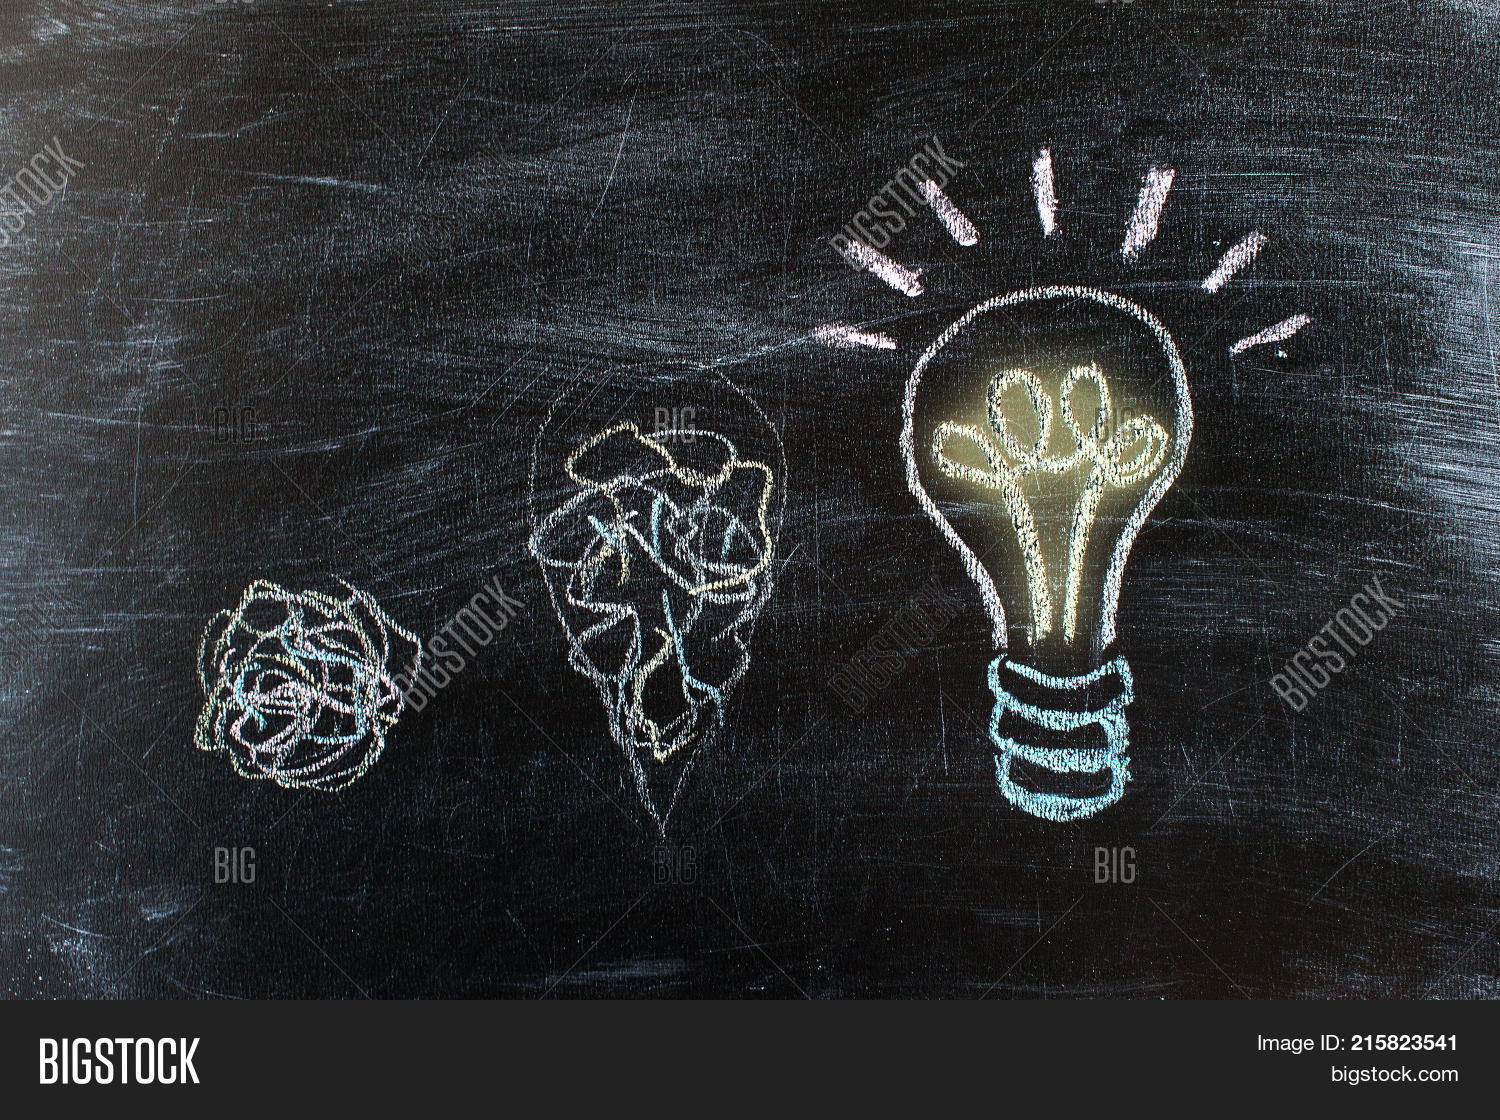 Eureka,background,birth,black,blackboard,board,brainstorming,bright,bulb,business,chalk,chalkboard,concept,conceptual,creative,creativity,discovery,drawing,education,electricity,energy,growth,idea,imagination,innovation,inspiration,invention,leadership,light,lightbulb,marketing,new,power,school,sign,sketch,solution,strategy,success,symbol,teamwork,think,thinking,way,white